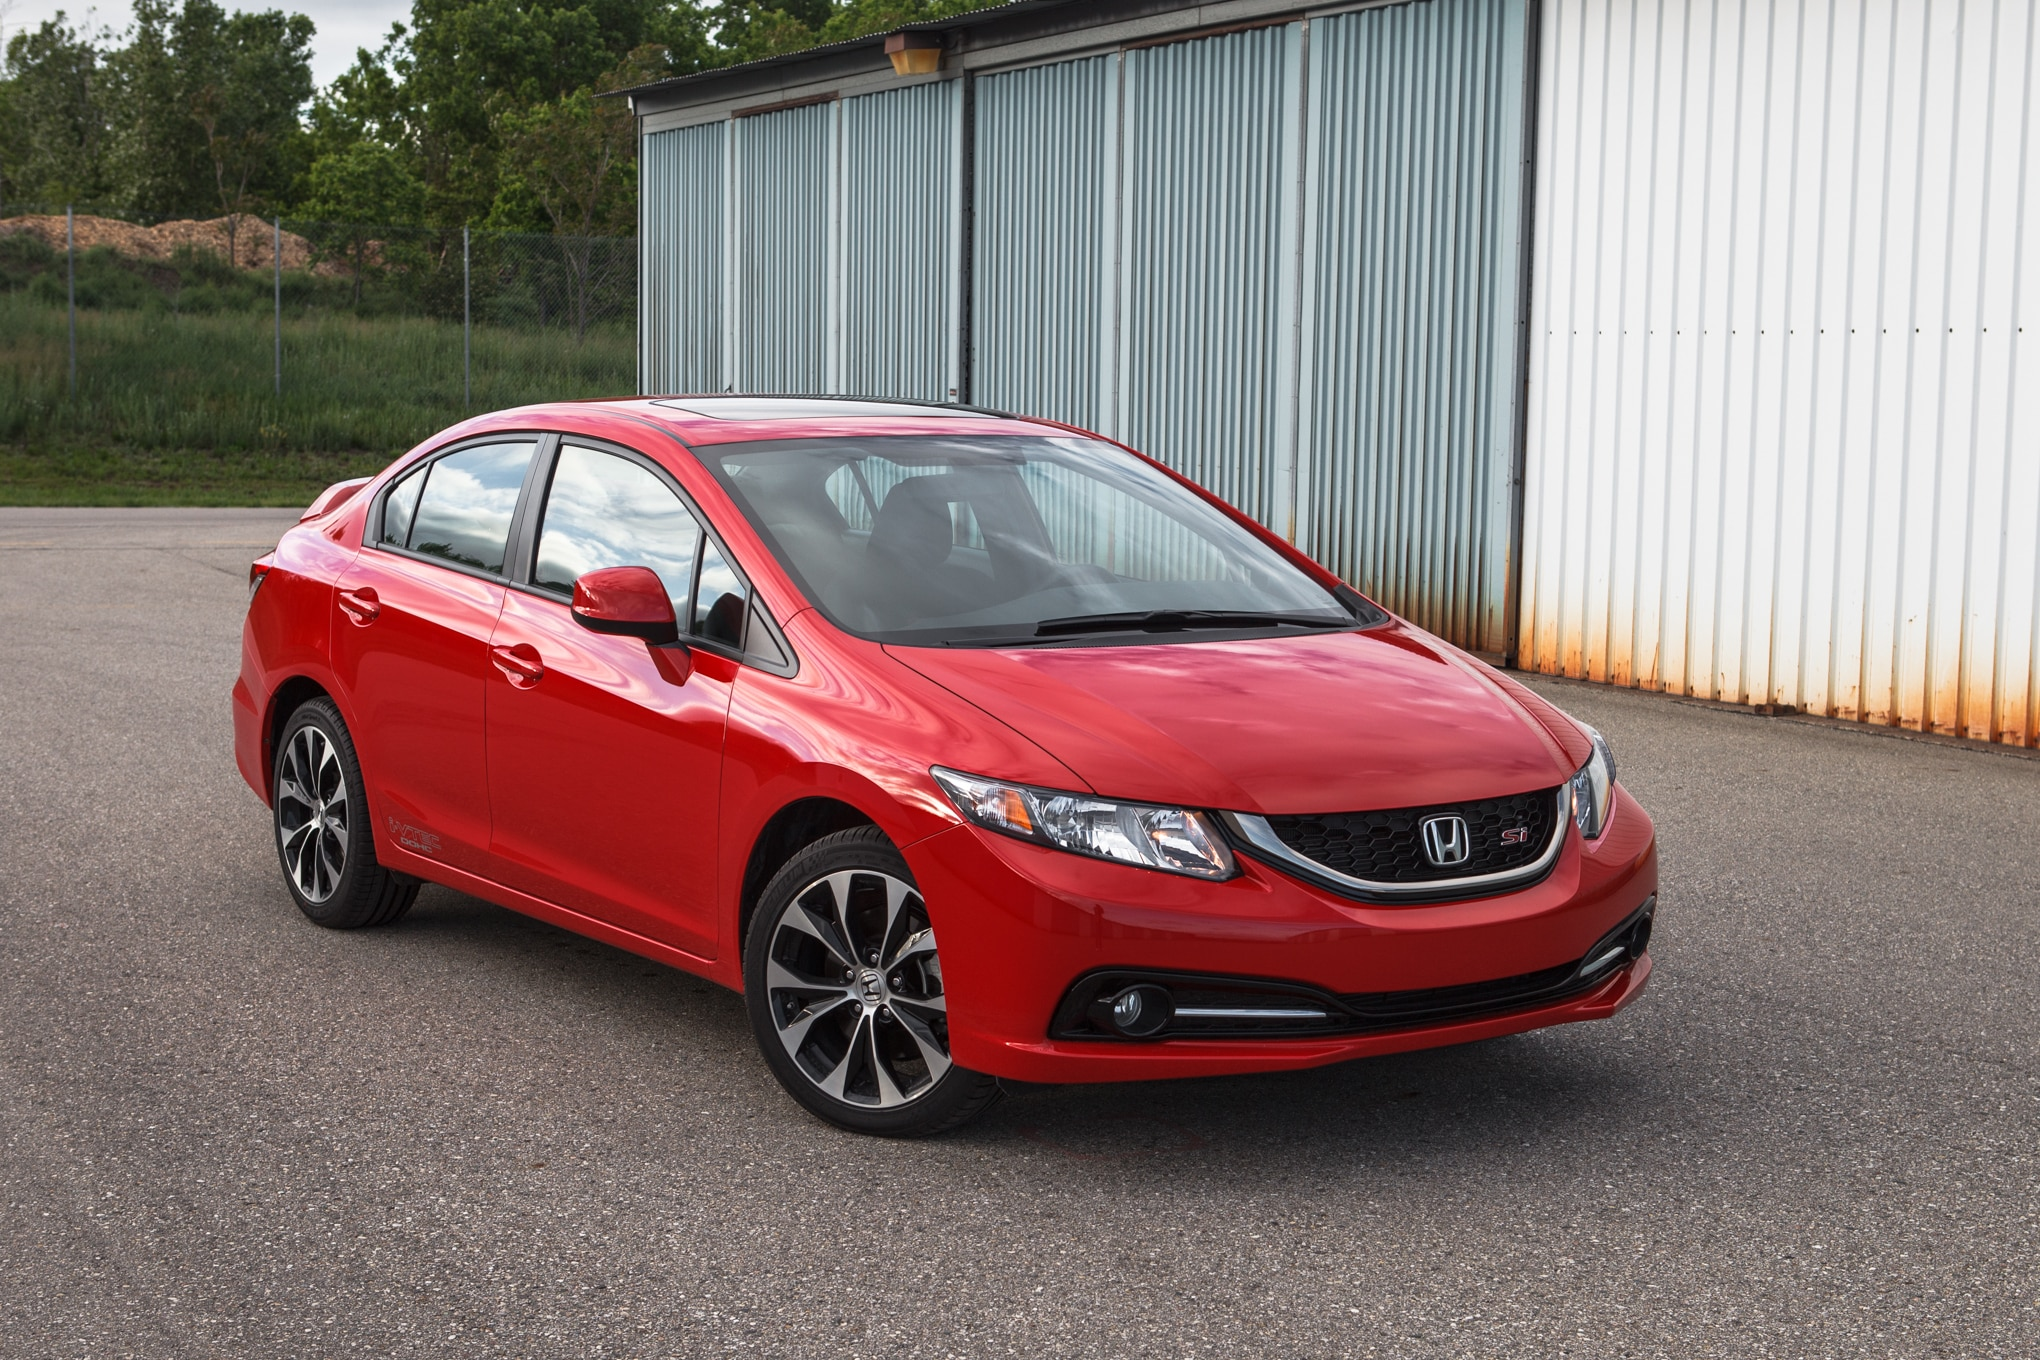 2013 Honda Civic Si Front Right View 21